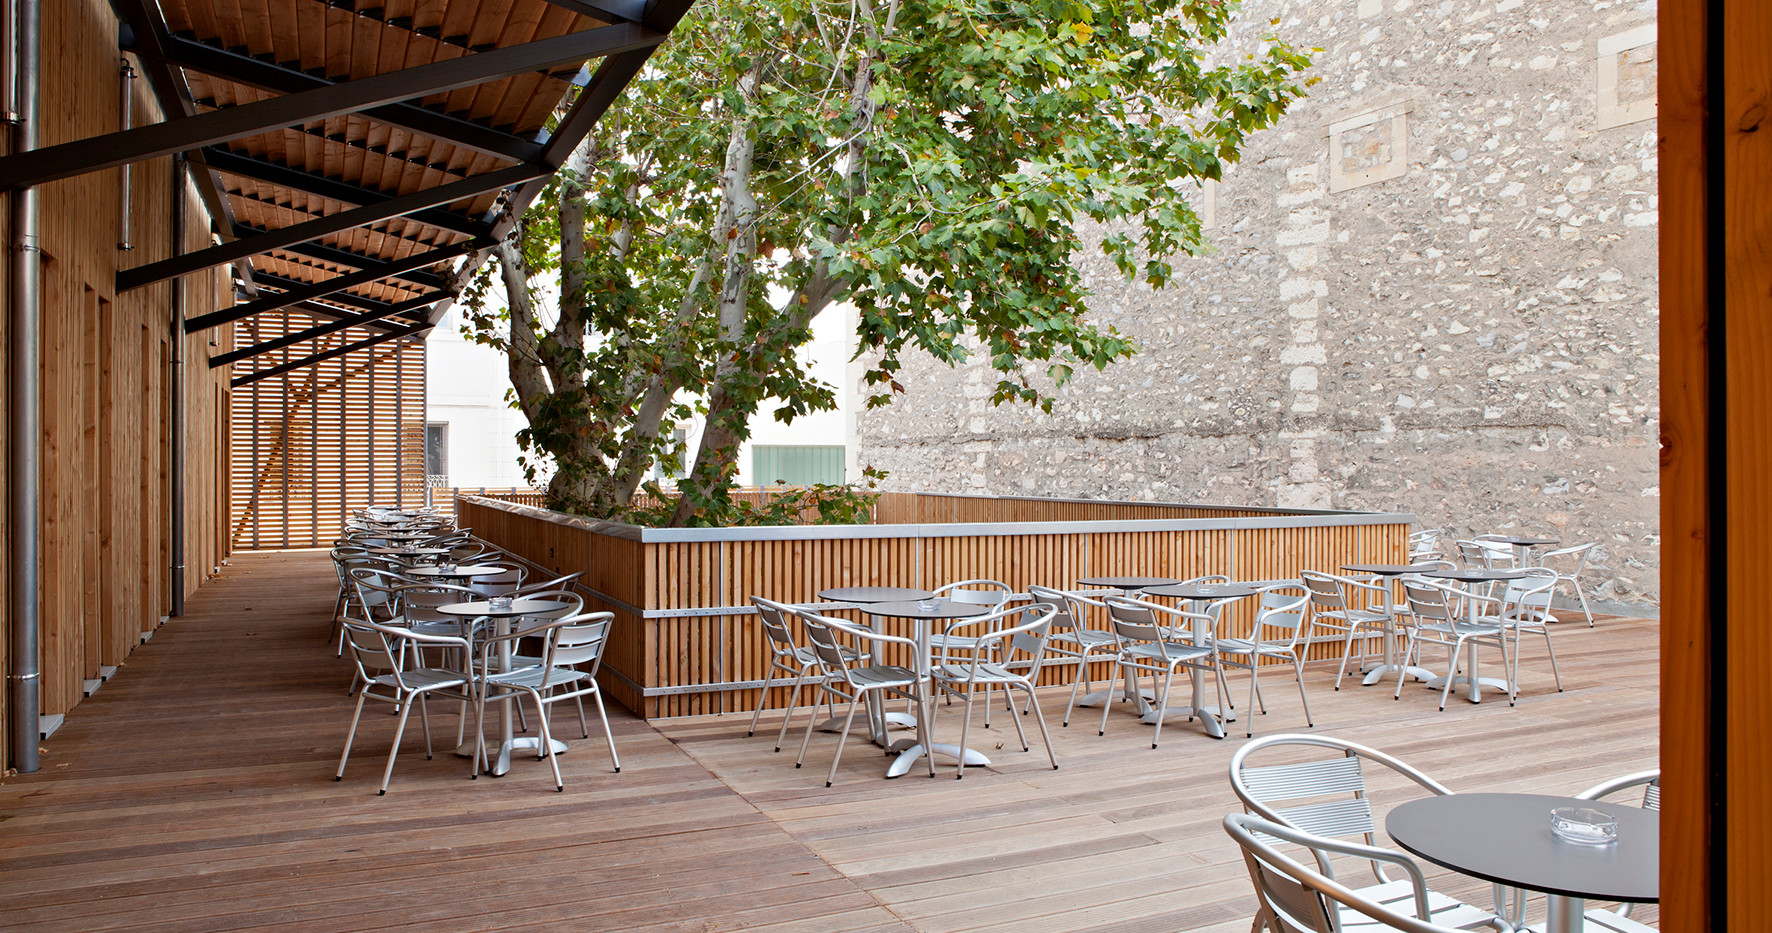 281 RIA PHO cour terrasse 7557 - terrass